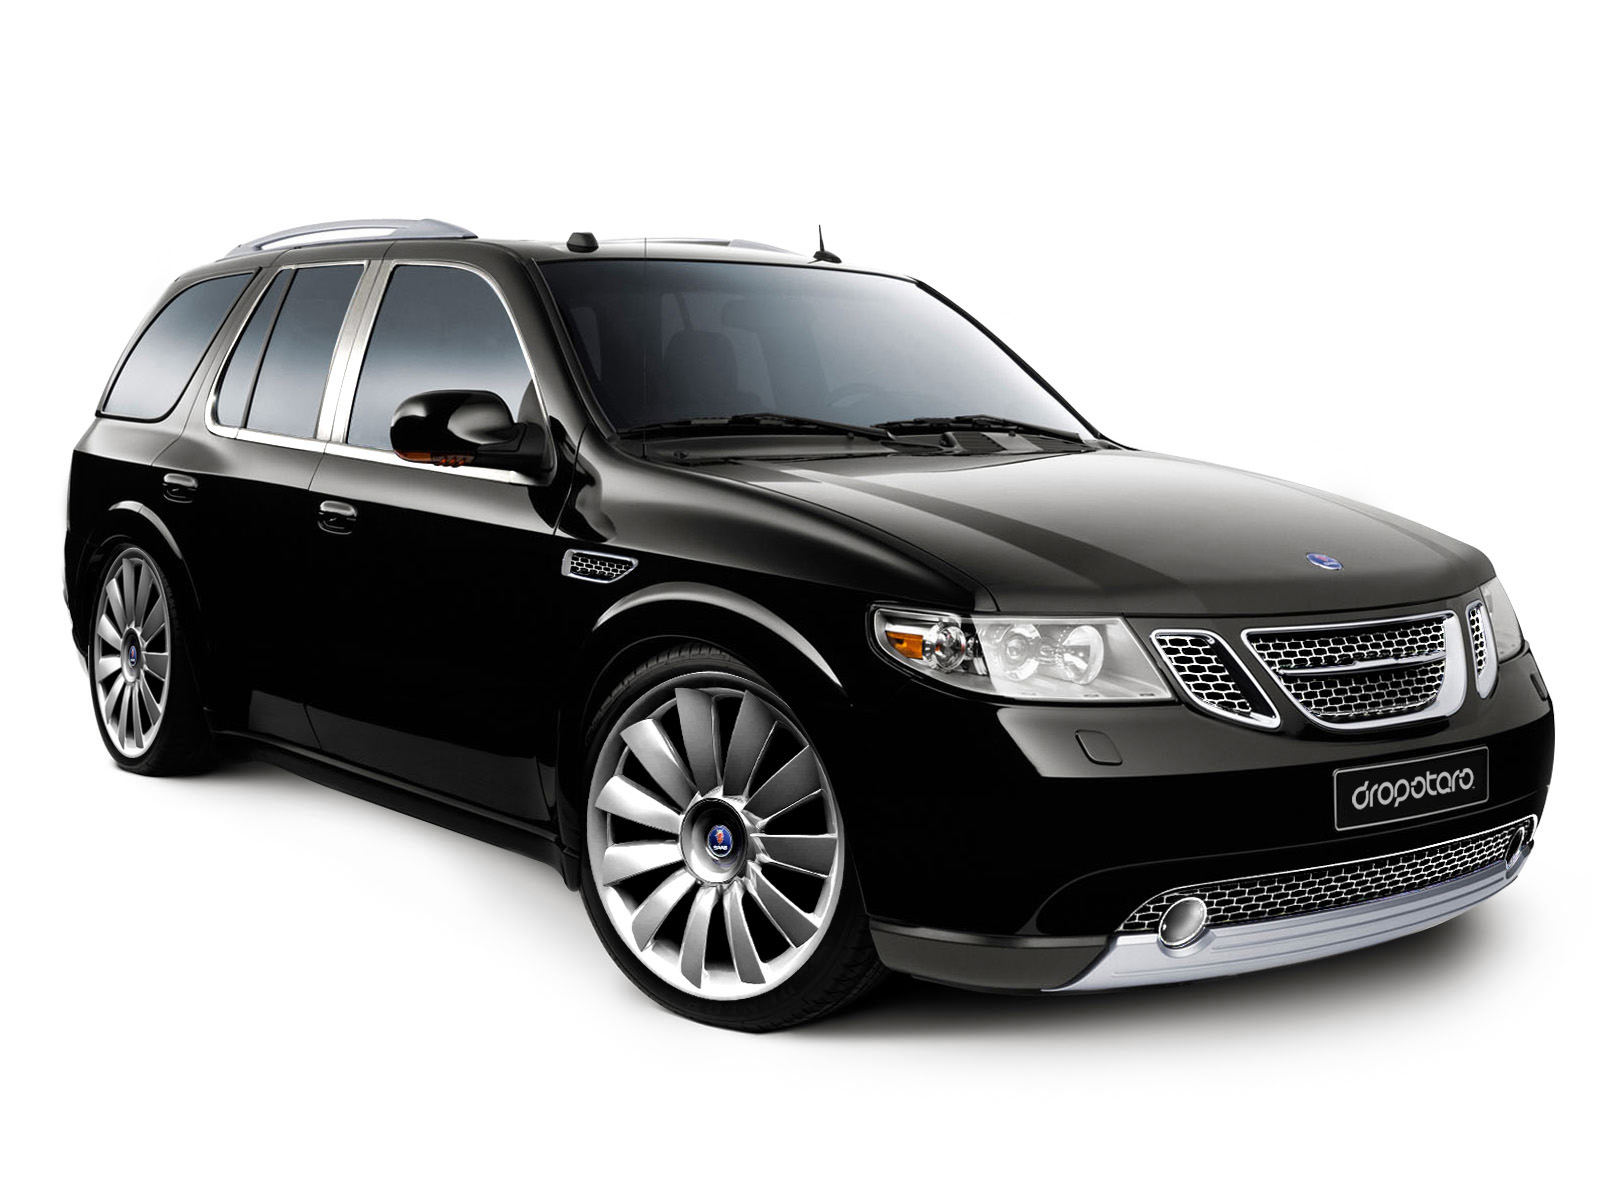 2006 saab 9 7x aero concept pictures history value research news. Black Bedroom Furniture Sets. Home Design Ideas